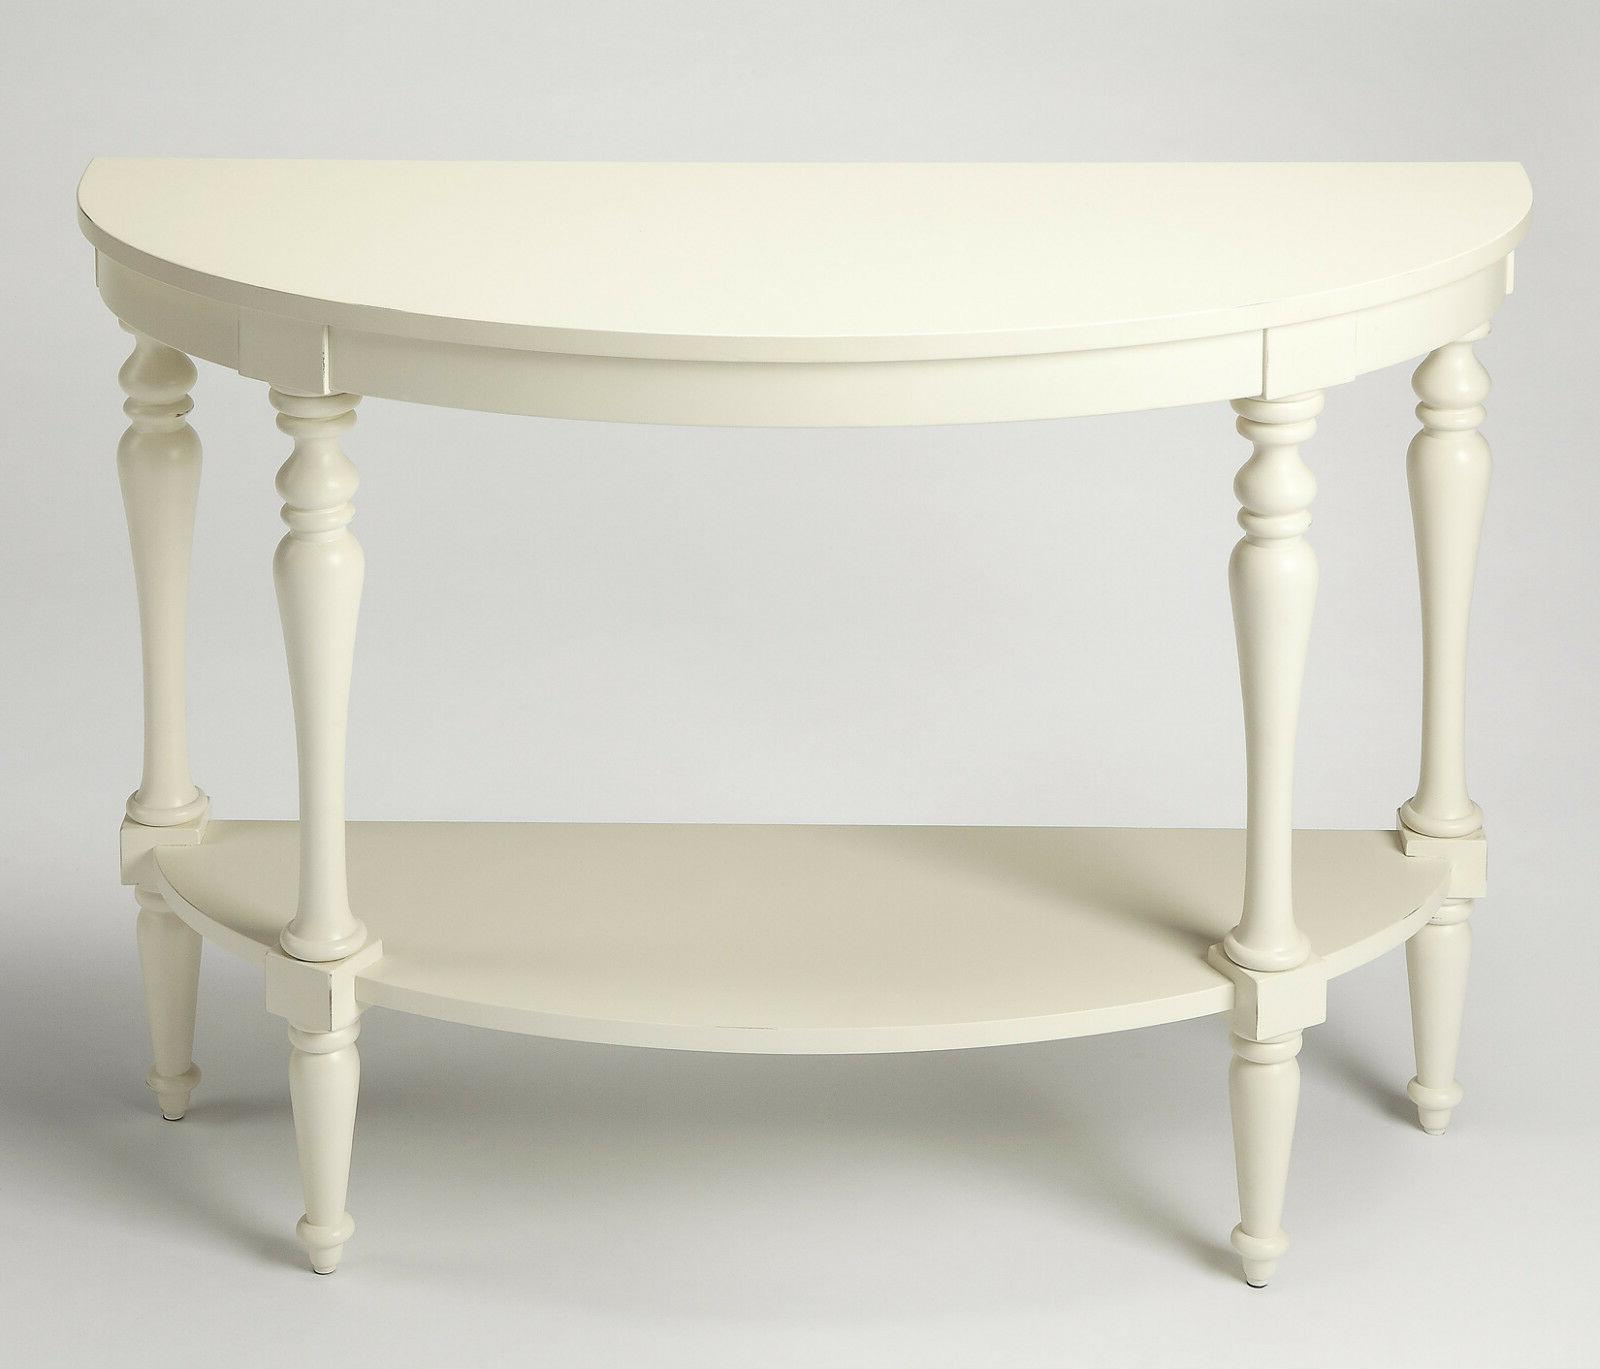 HANOVER SQUARE DEMILUNE CONSOLE TABLE - WHITE FINISH - FREE